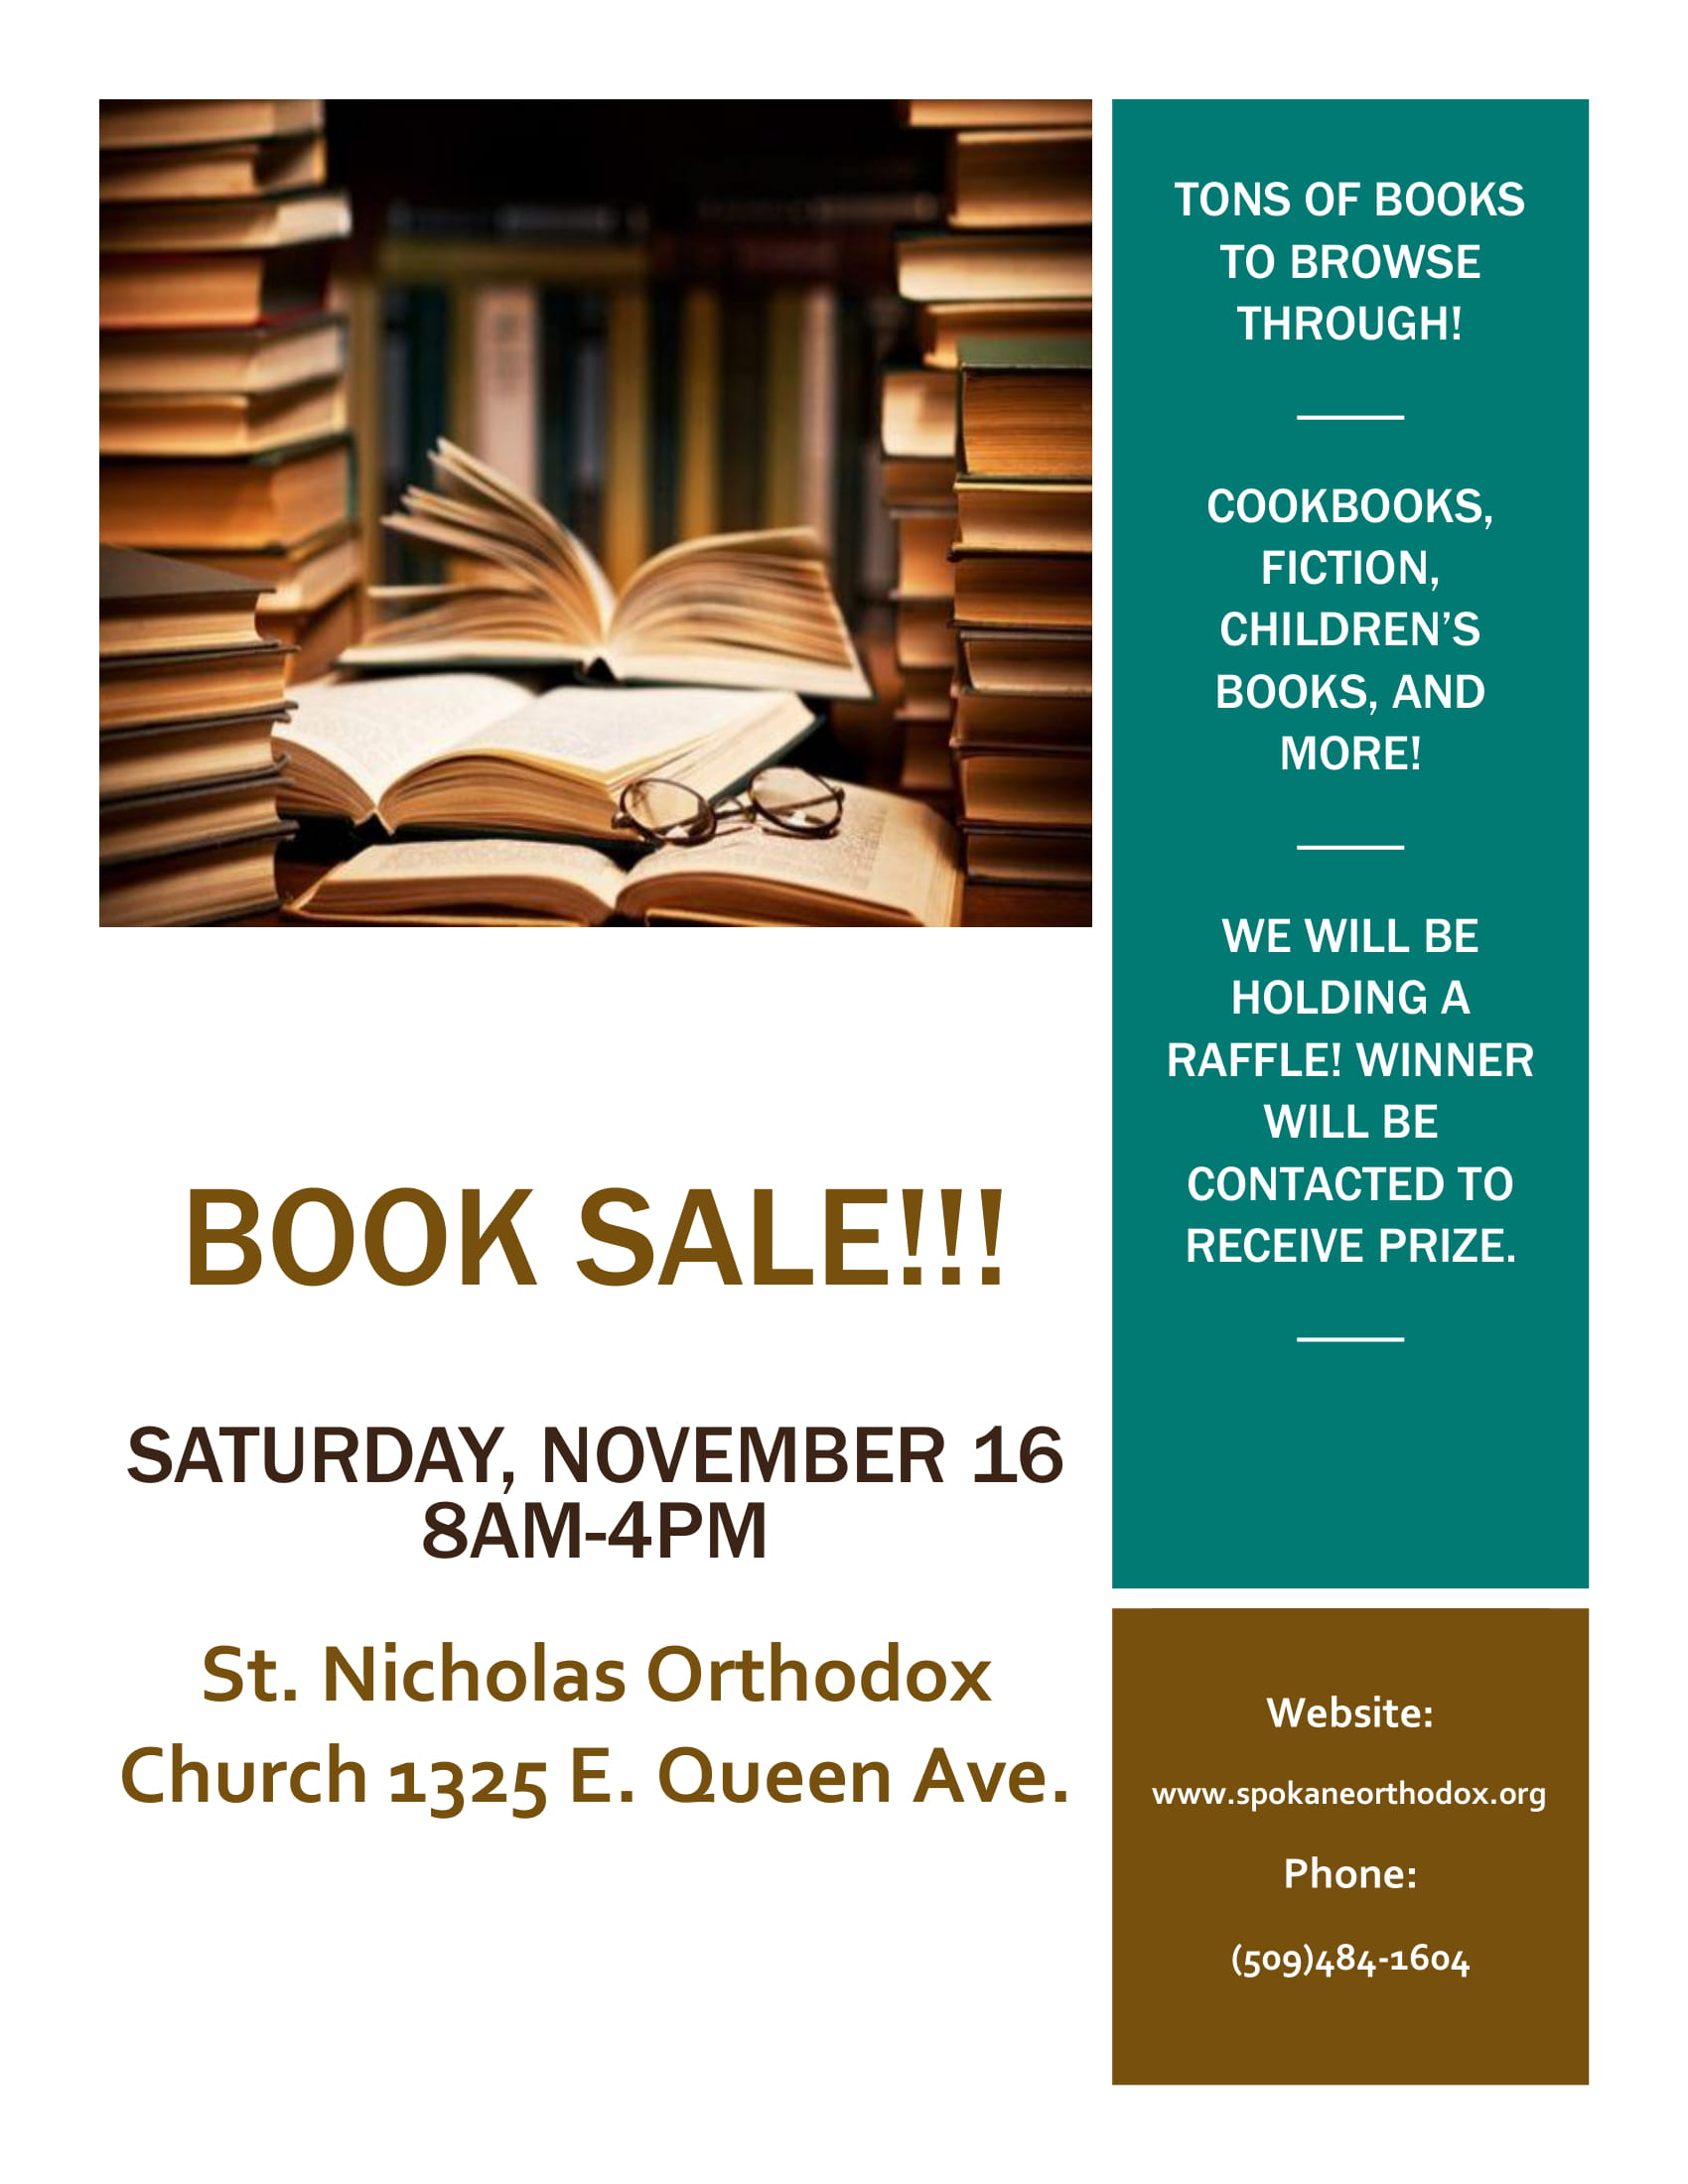 Book sale flyer 2.0-1